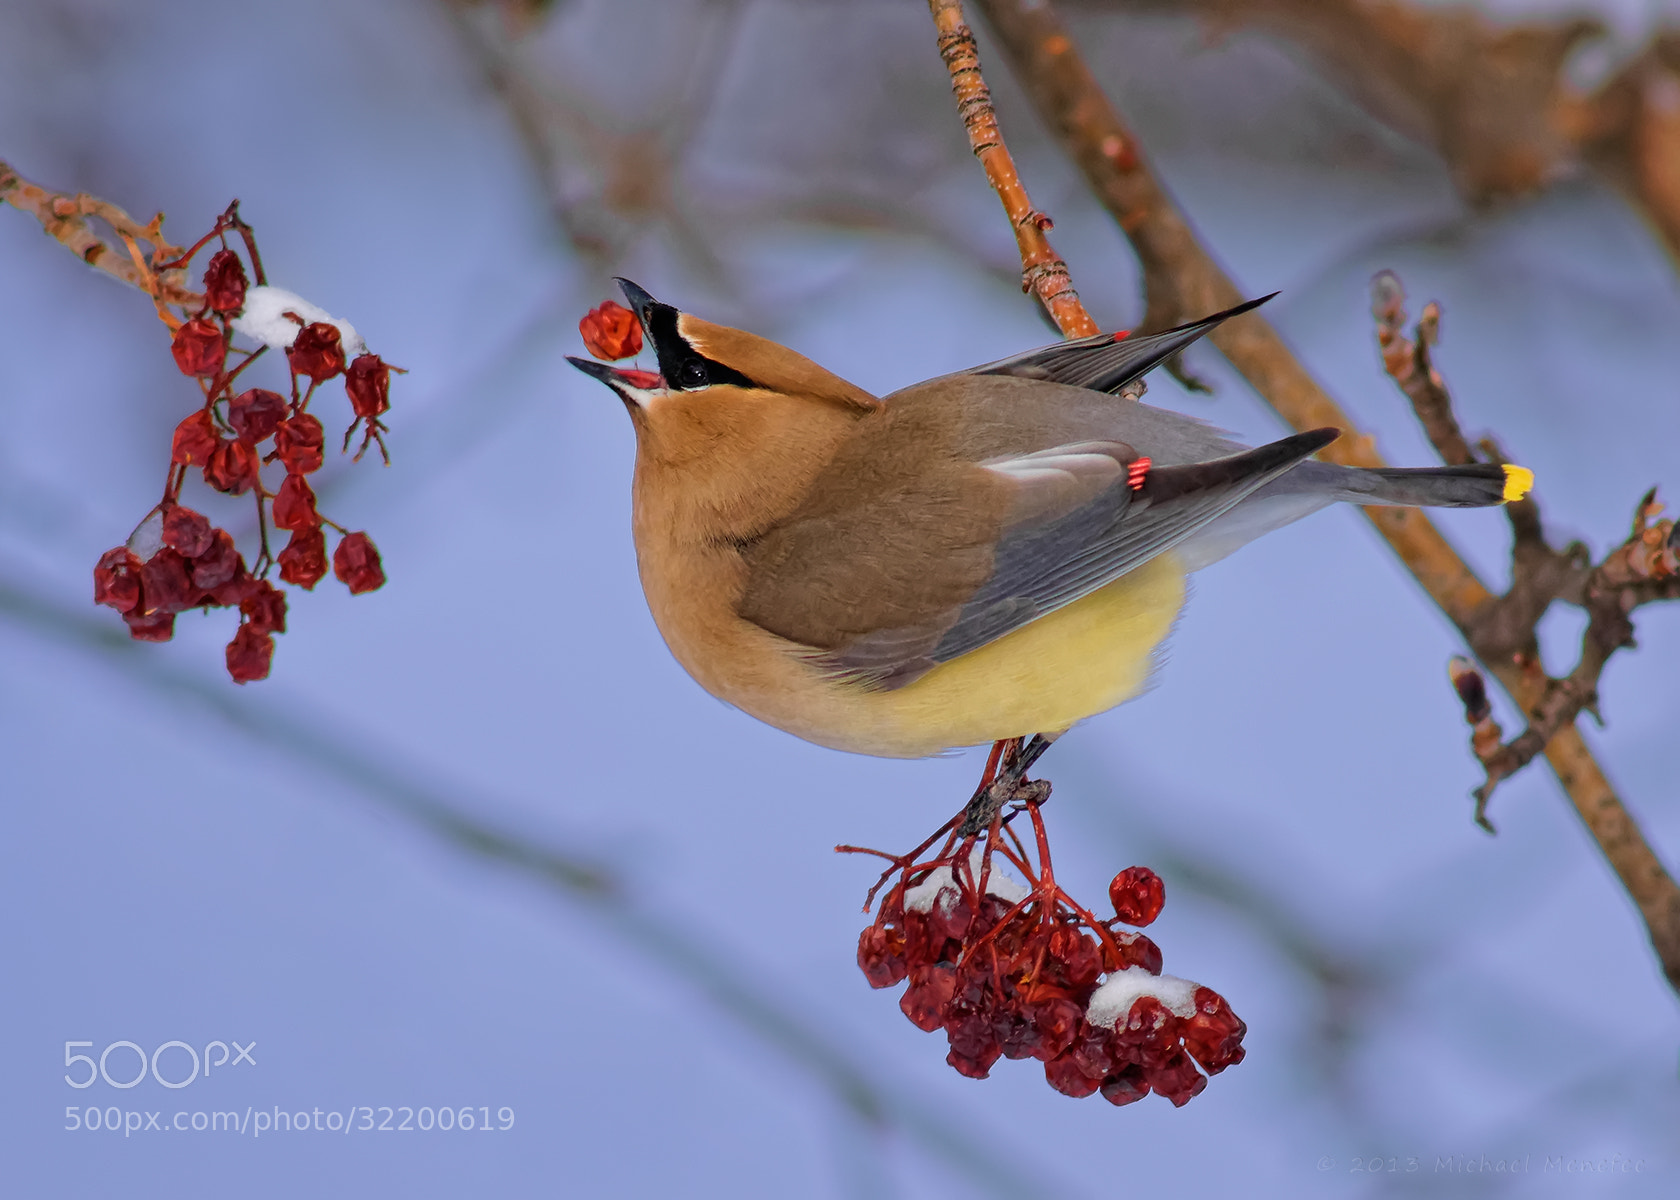 Photograph Waxwing Berry Delivery System by Michael Menefee on 500px